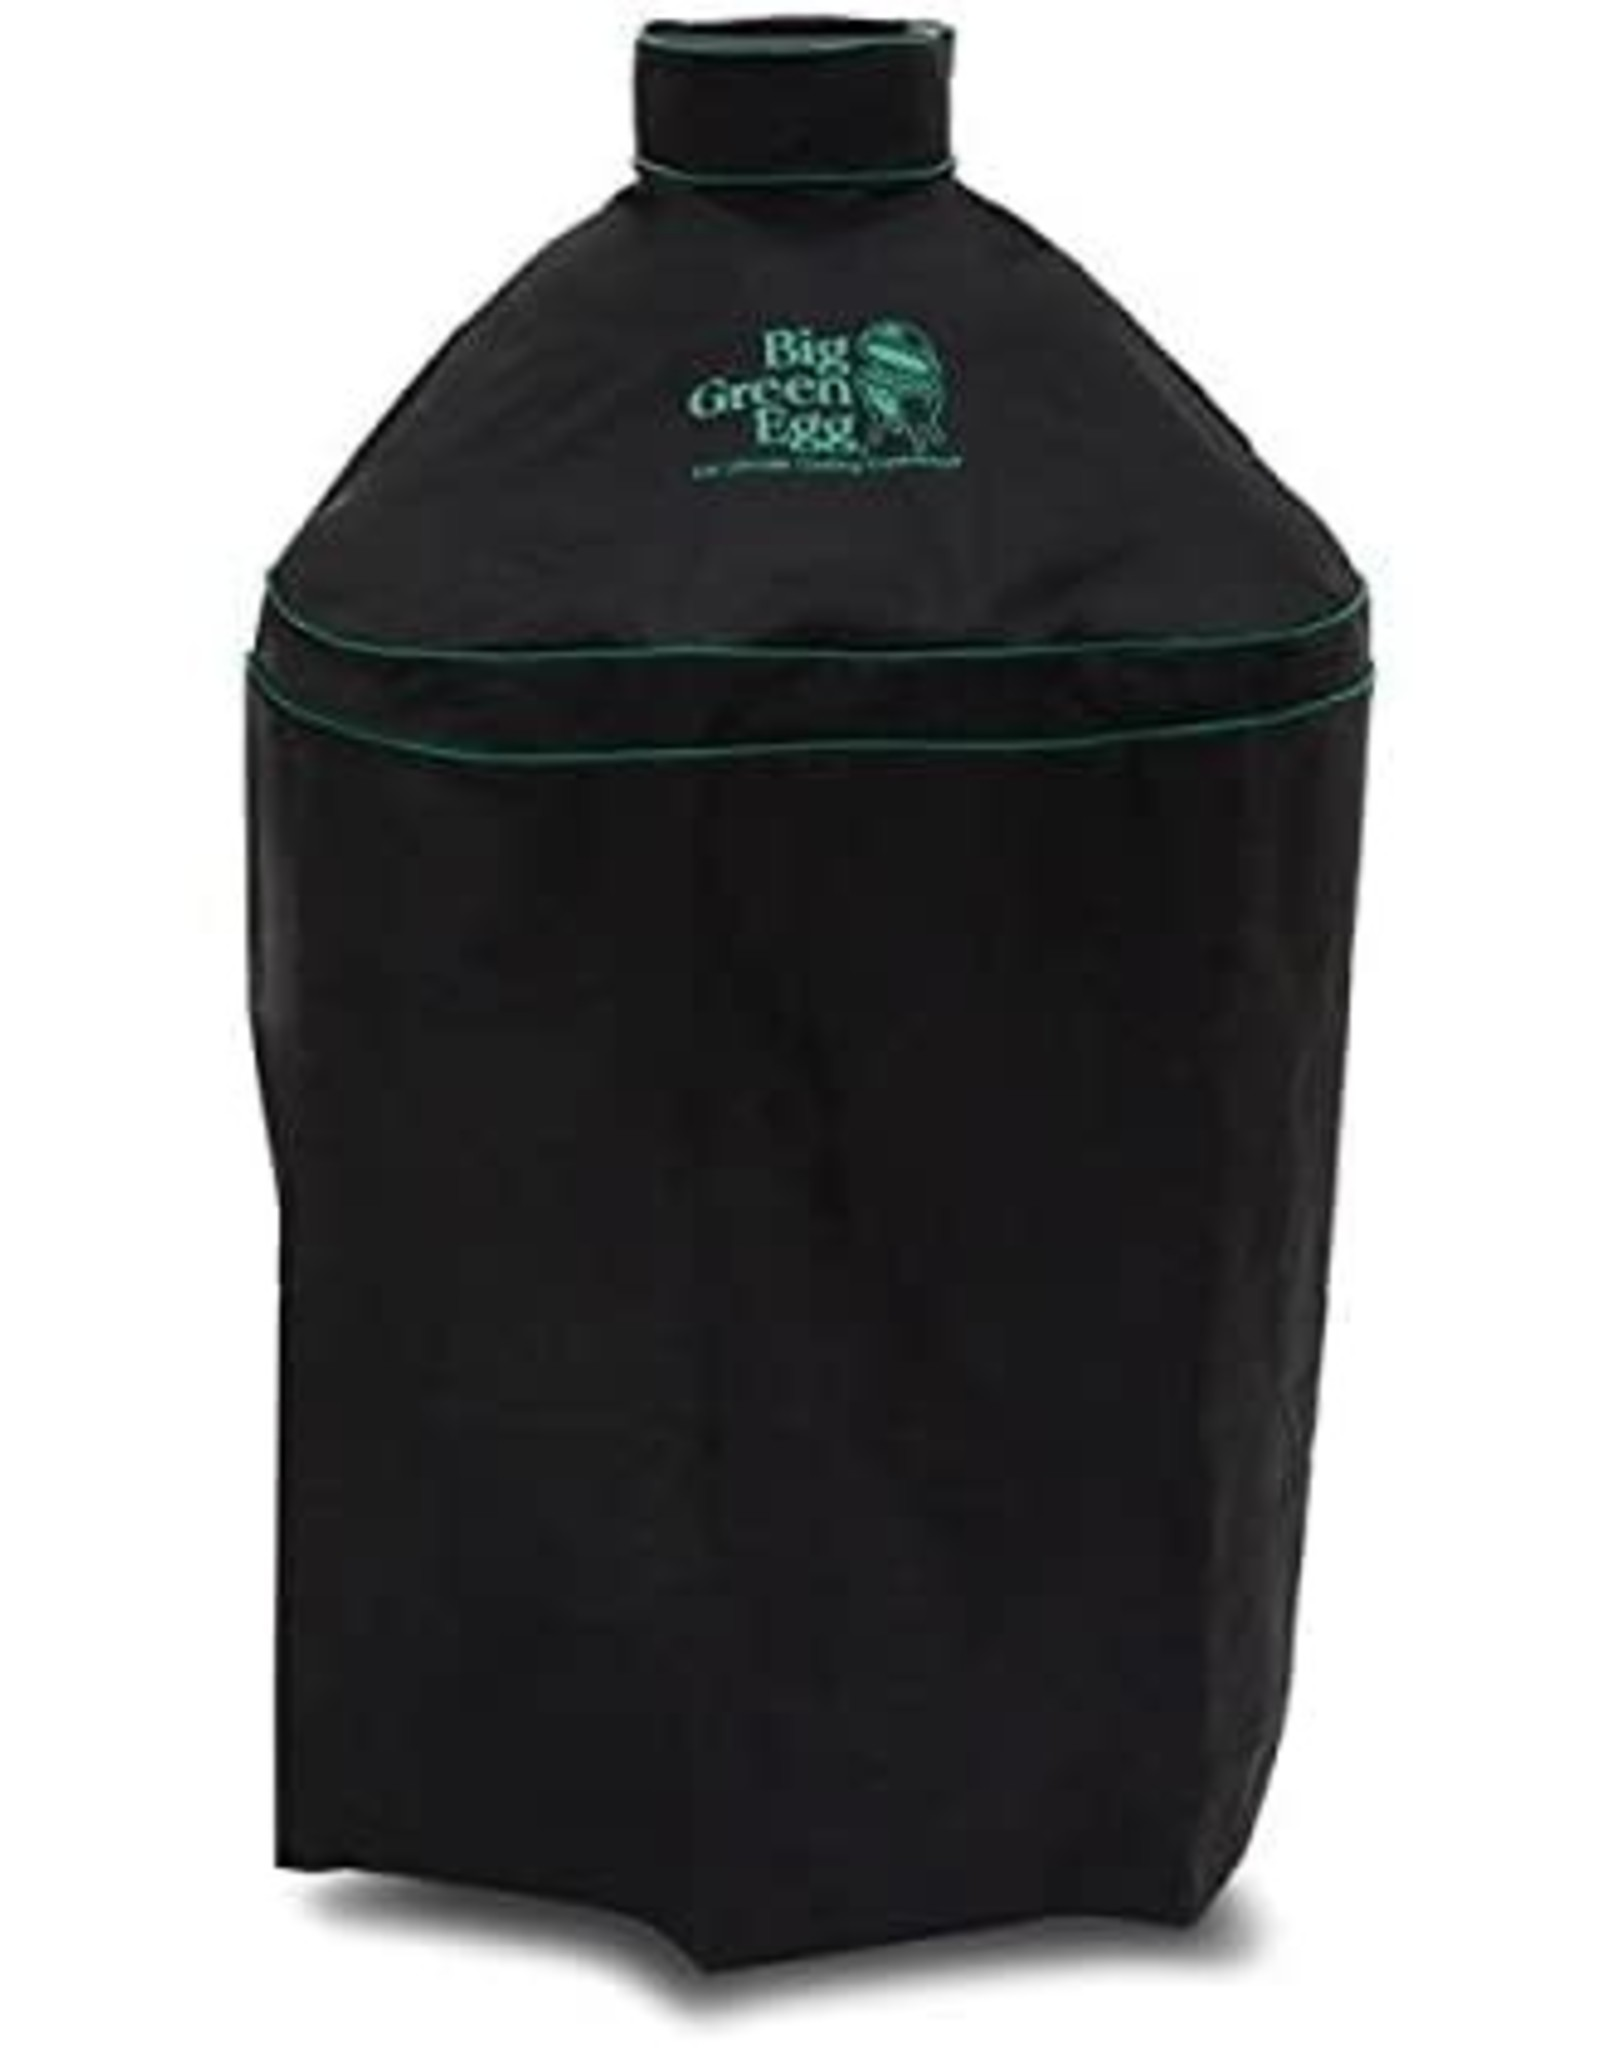 Big Green Egg BGE Cover for XL in Nest Black